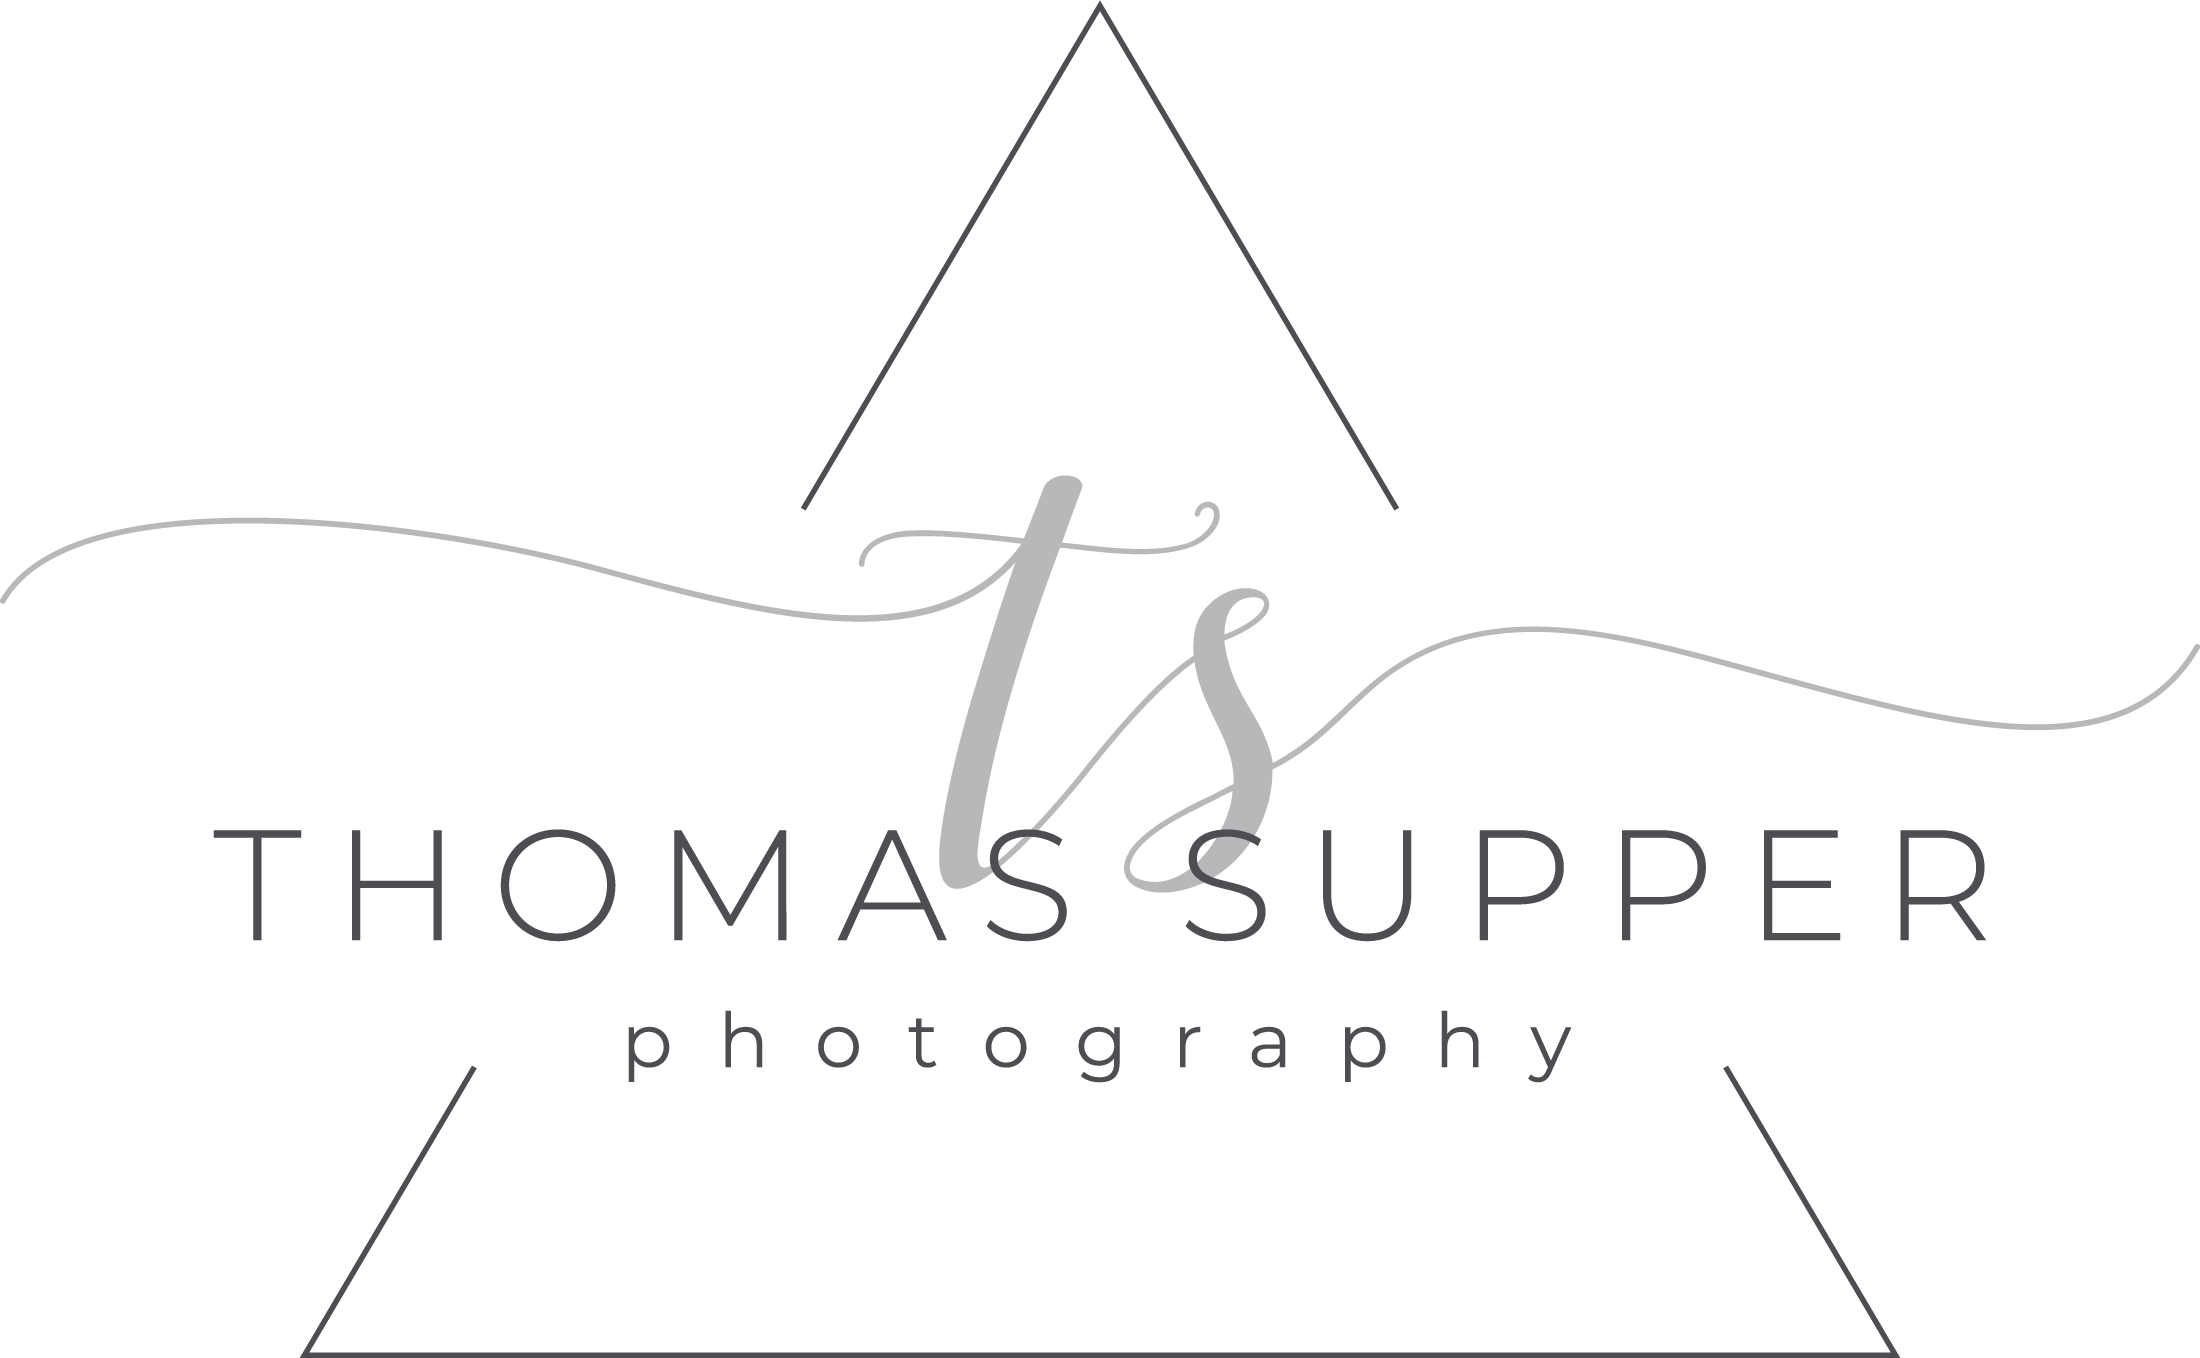 Thomas Supper Fotografie